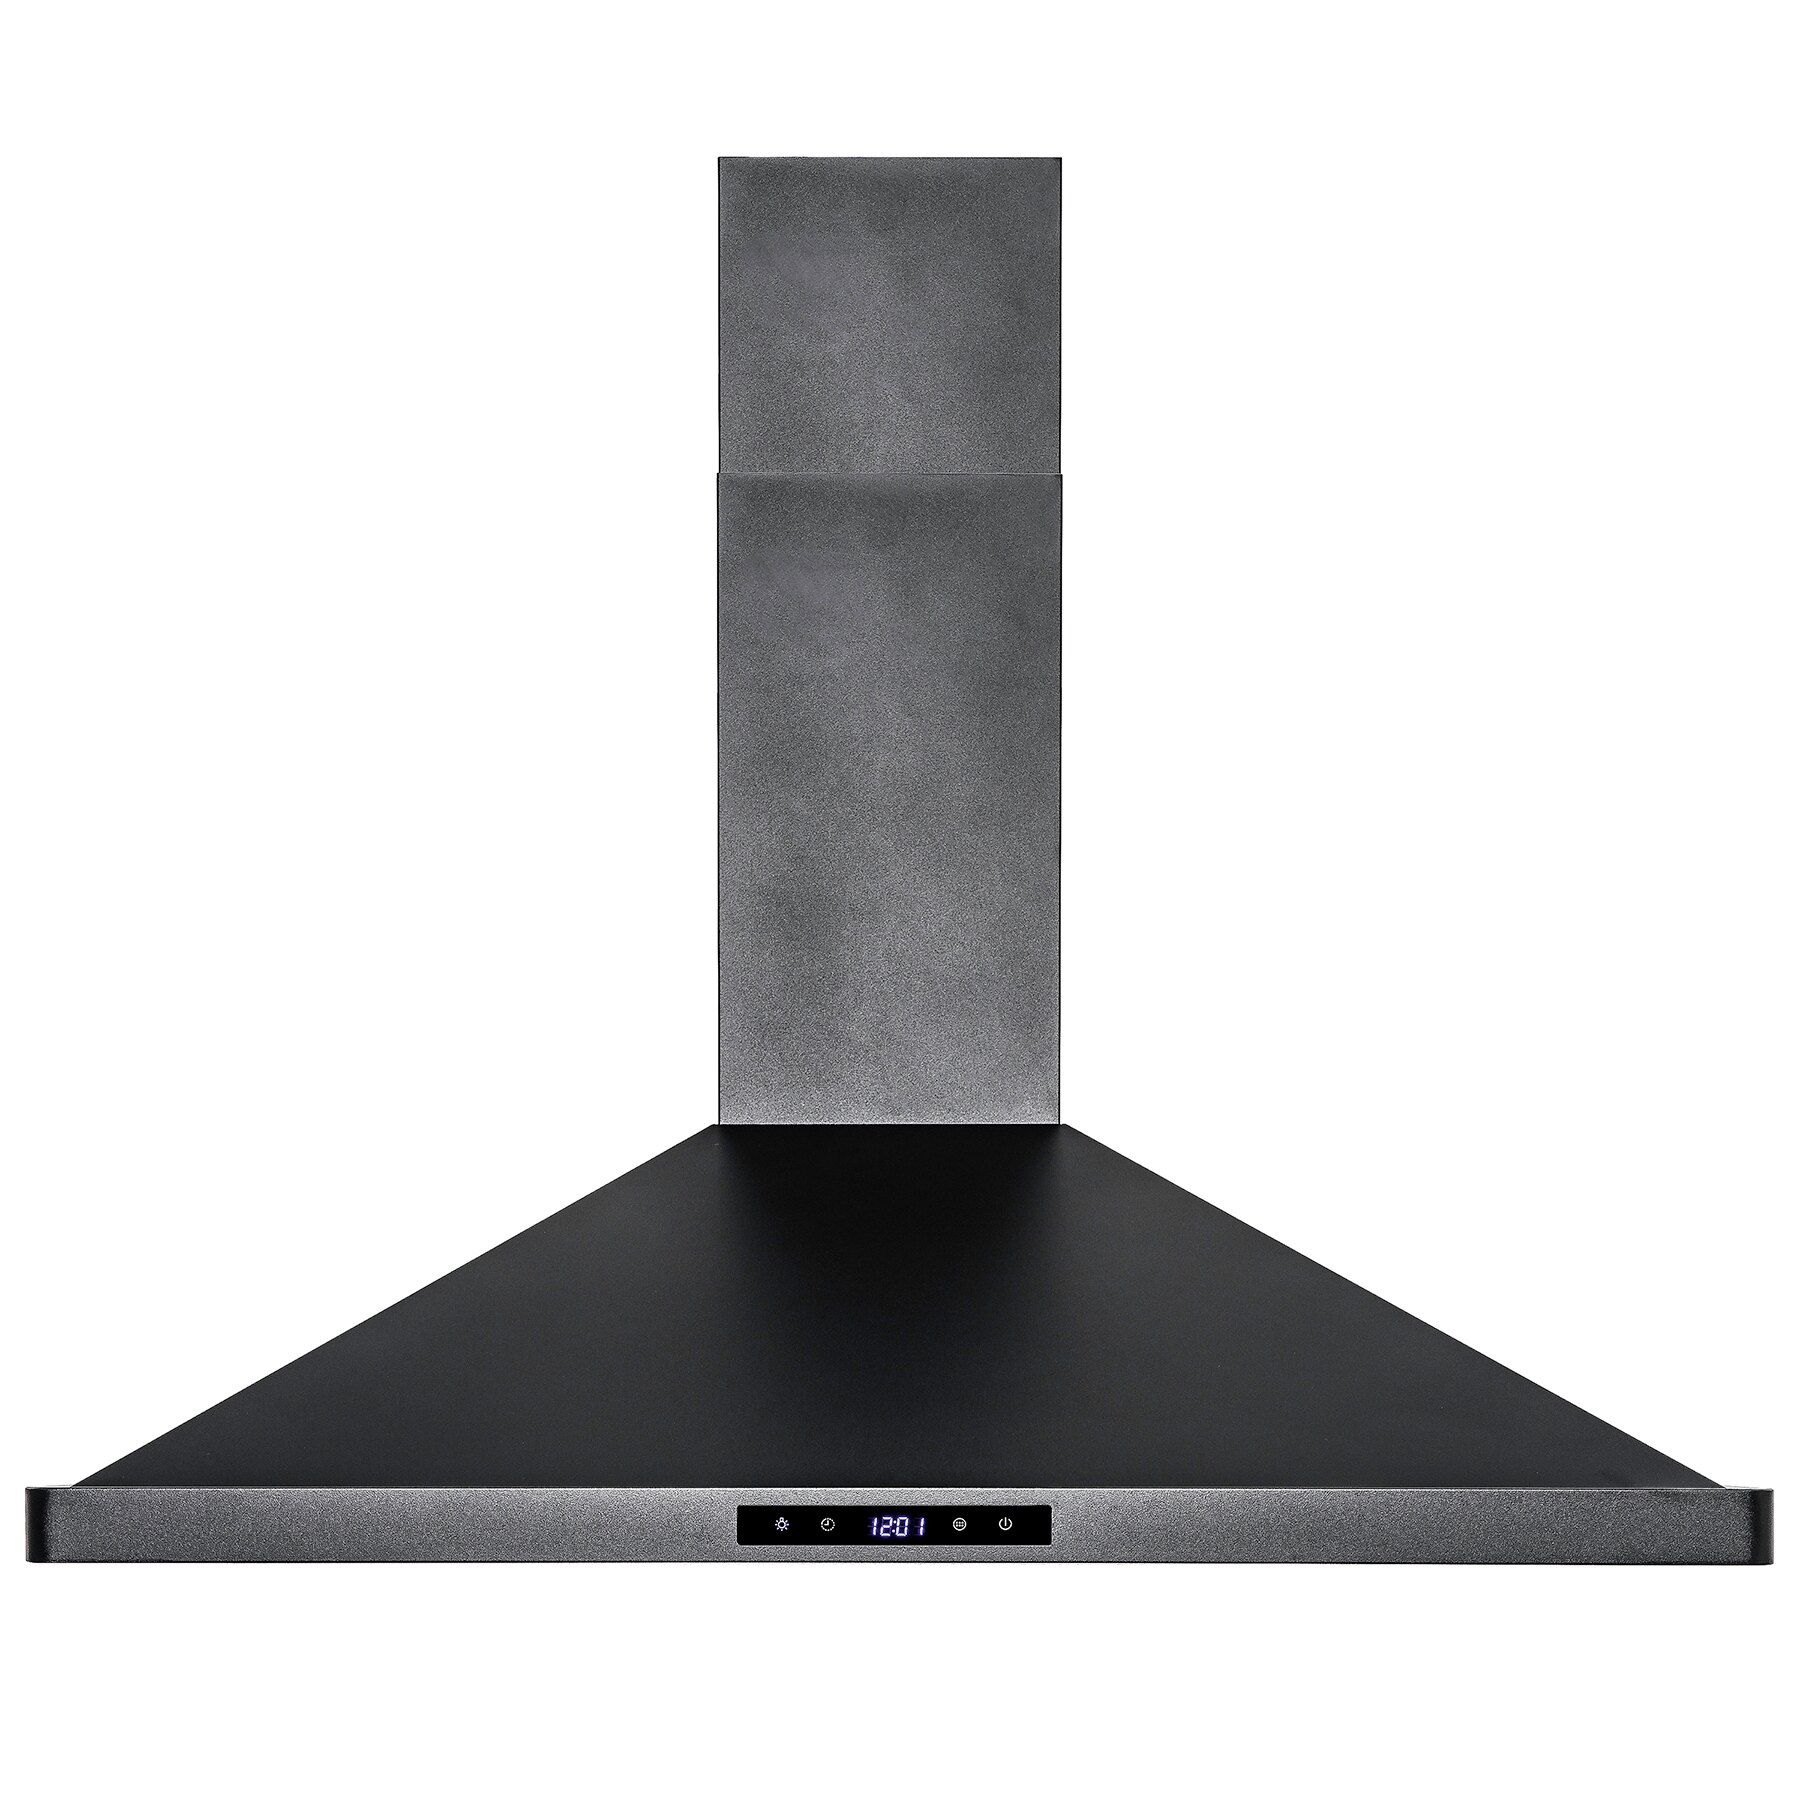 "AKDY Black Finish 36"" Stainless Steel Touch Control Wall Mount Range Hood Cooking Fan Vent 4"